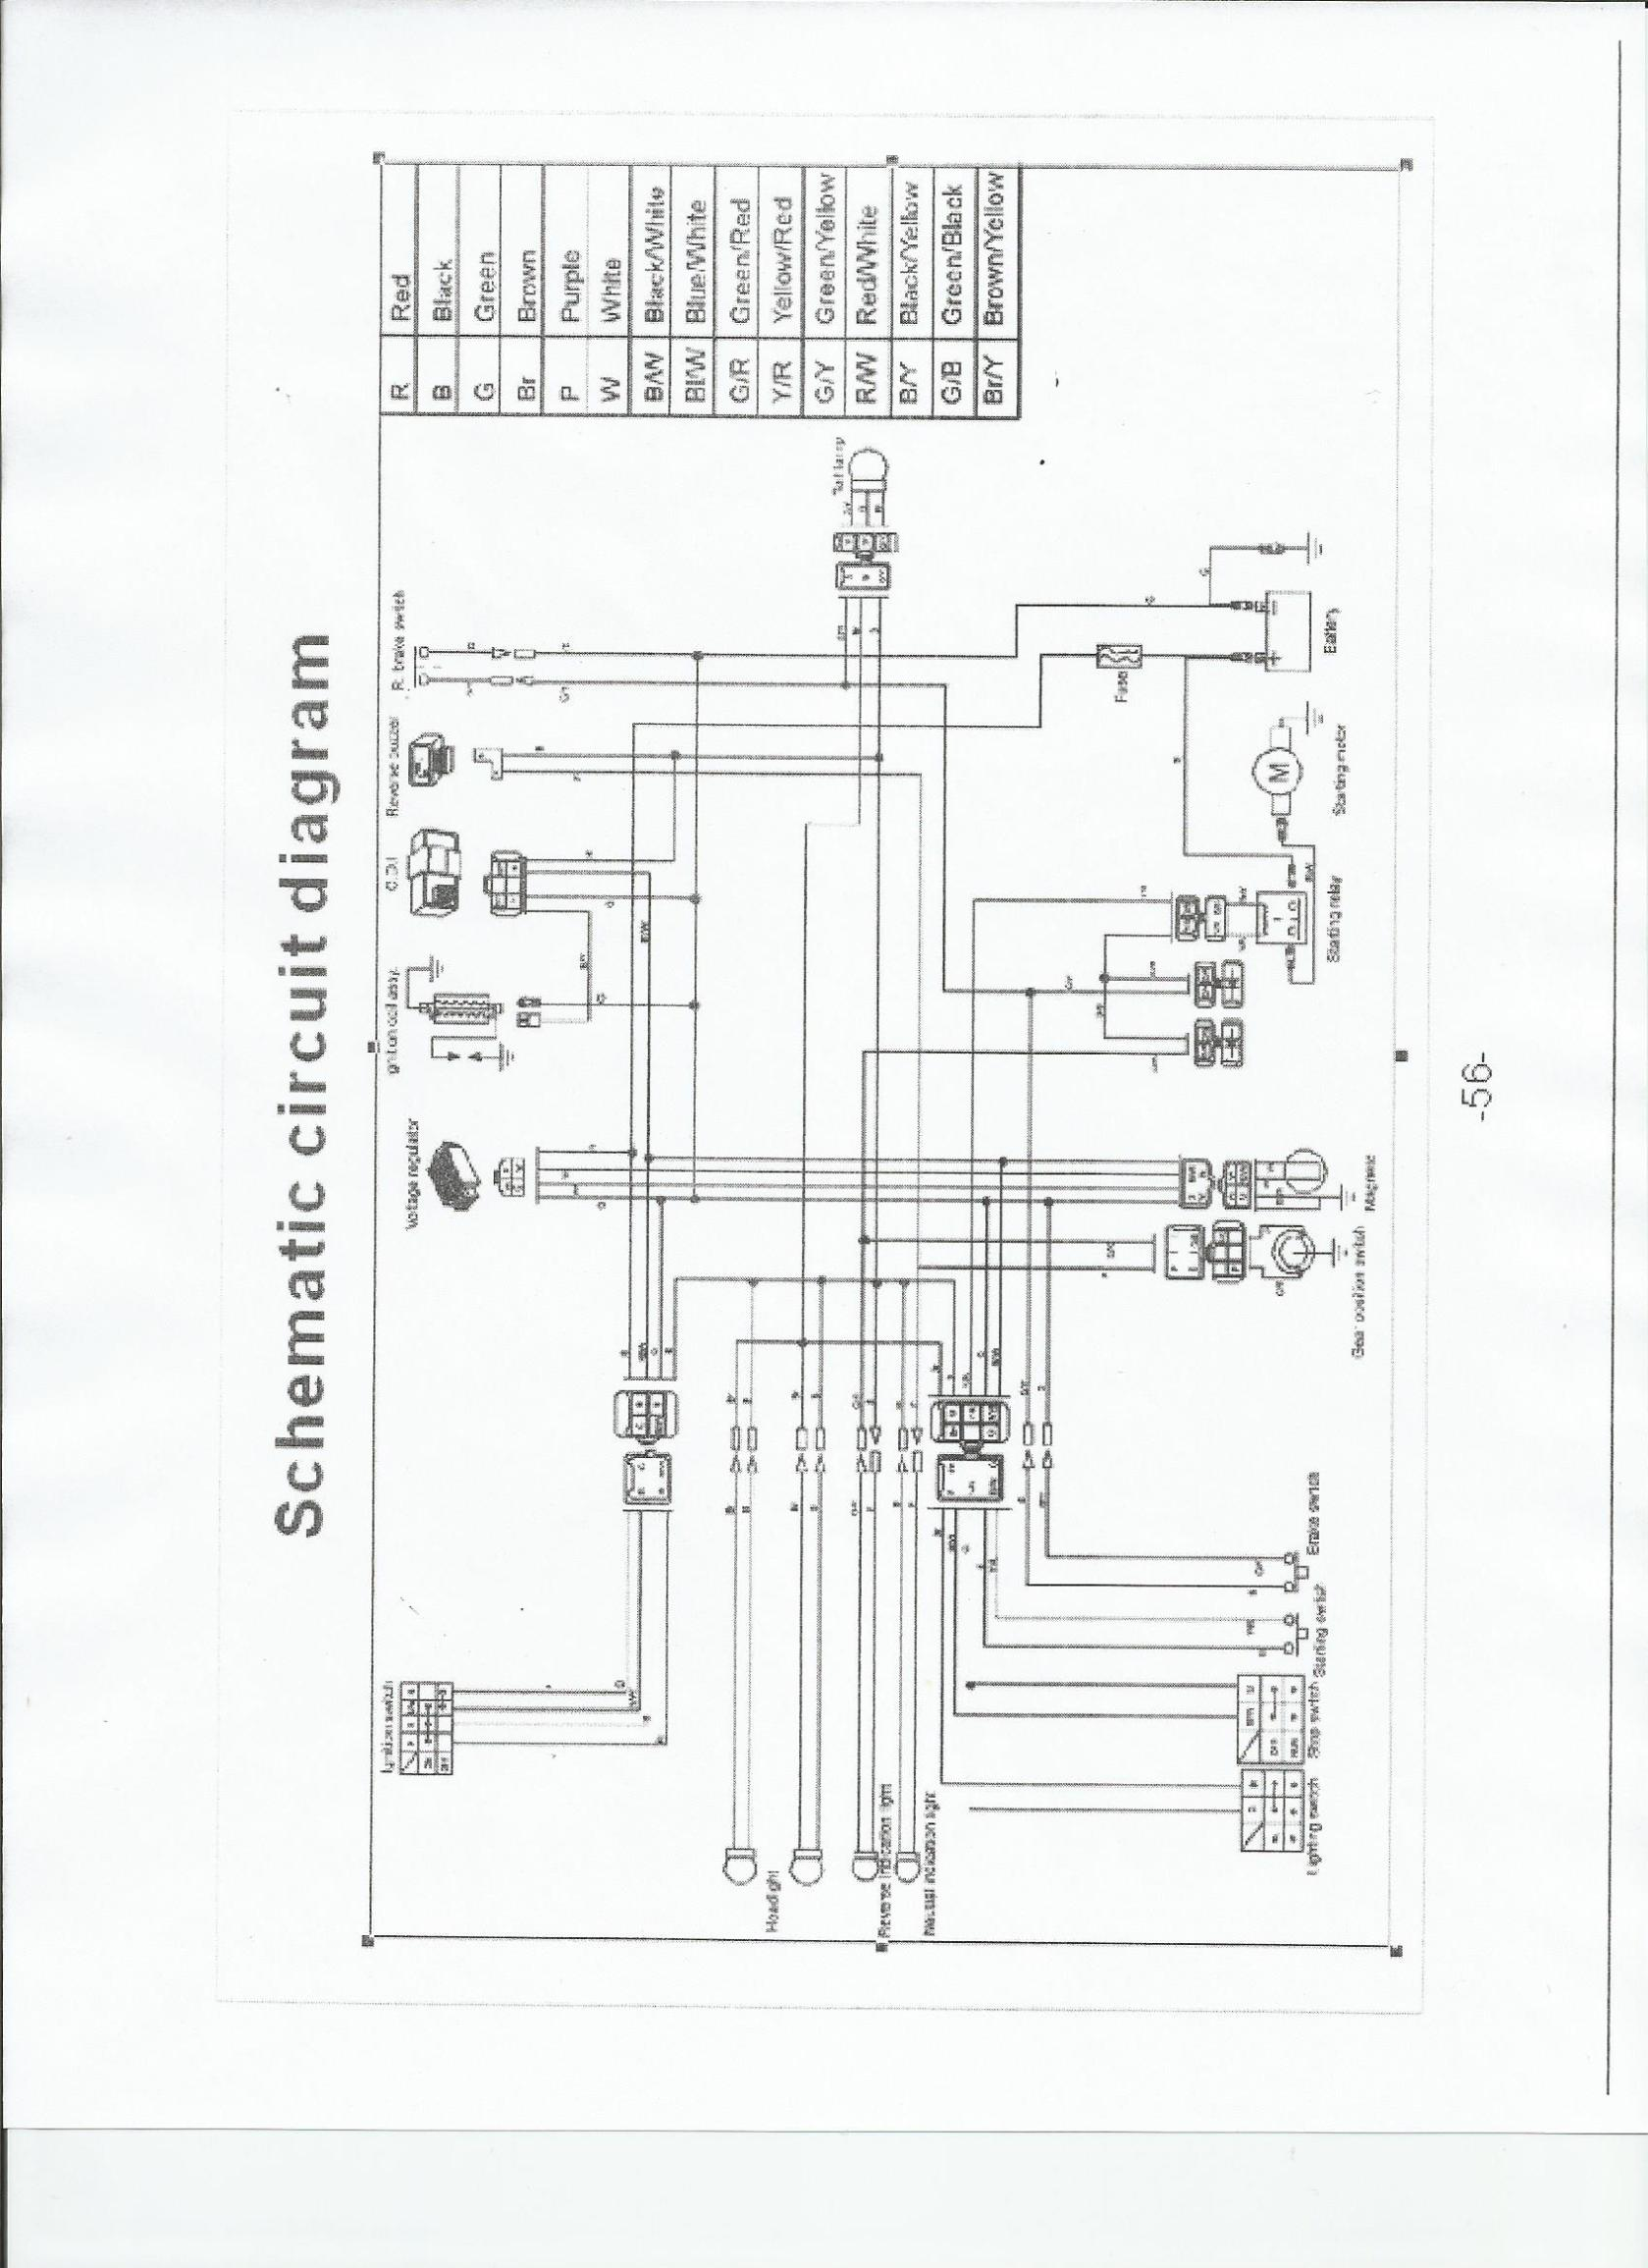 sunl 90cc atv wiring diagram wiring diagrams roketa 110cc atv wiring diagram wire